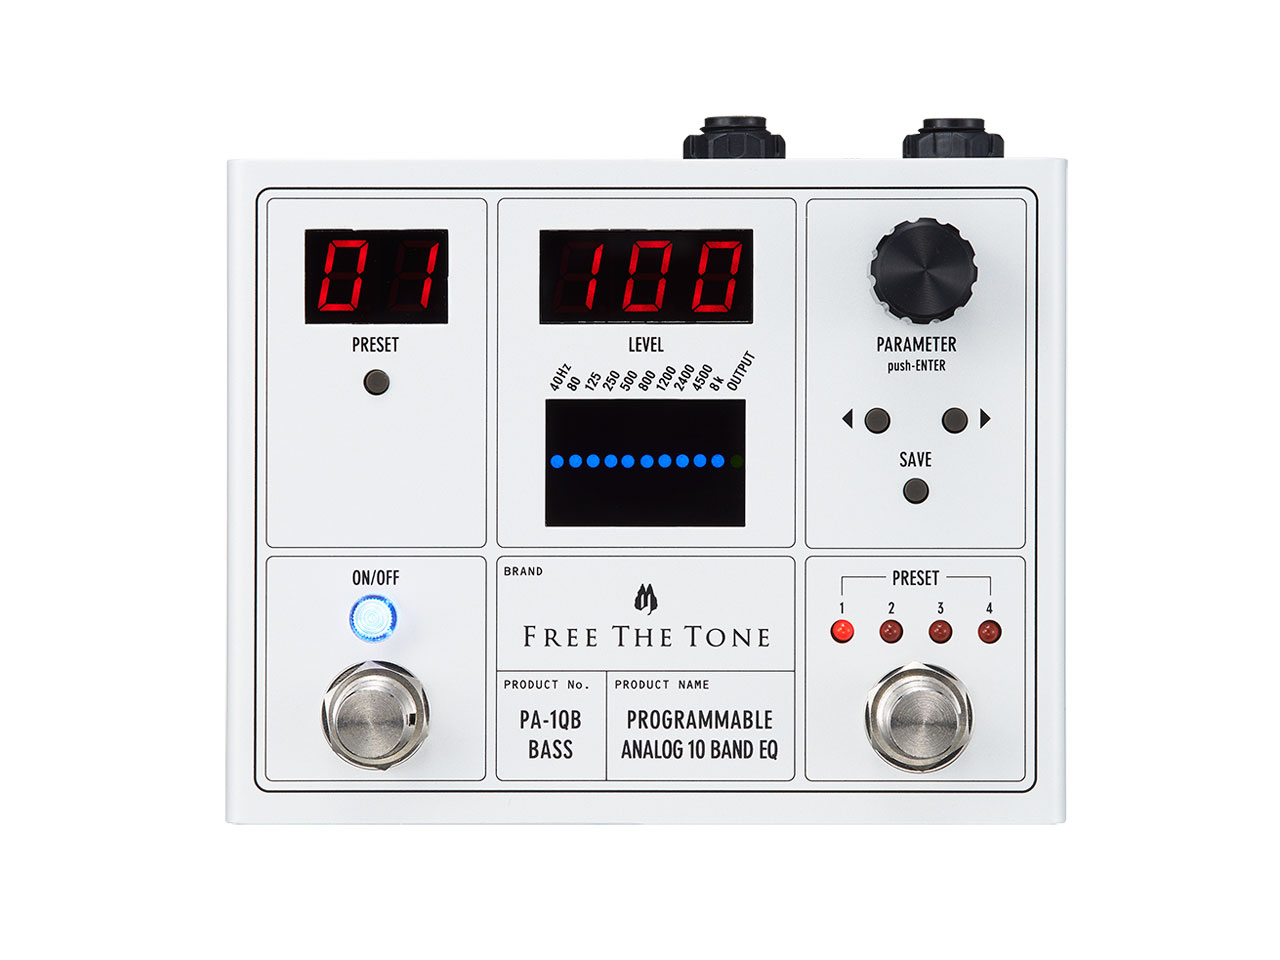 Free The Tone(フリーザトーン) PROGRAMMABLE ANALOG 10 BAND EQ PA-1QB (ベース用イコライザー)